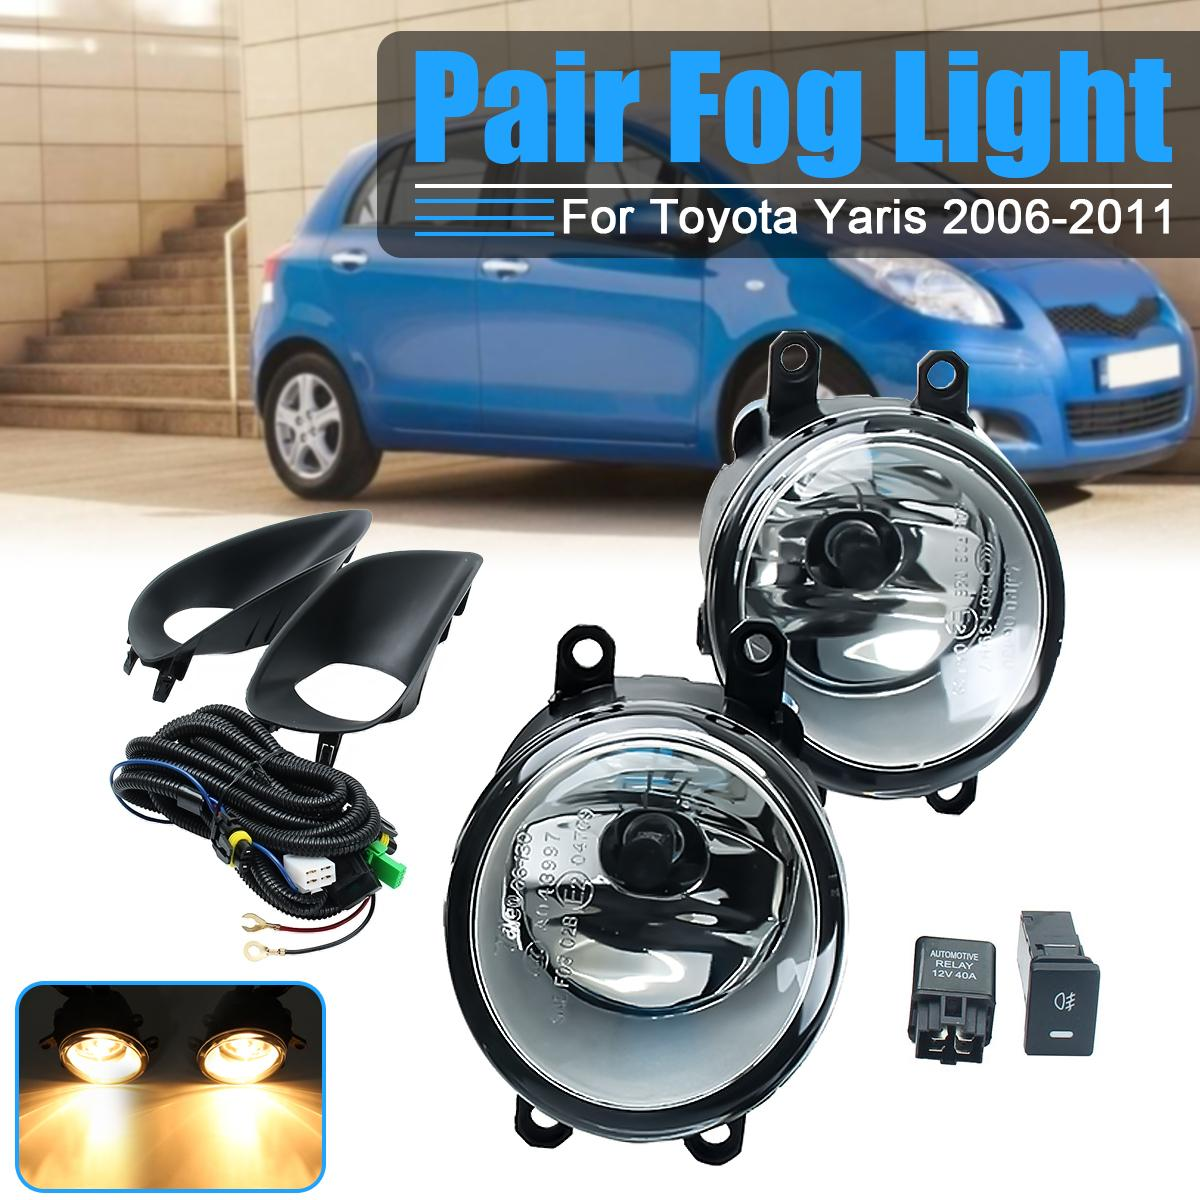 Pair Car Front Clear Fog Light + Switch Harness Cover For Toyota Yaris Sedan 4DR 2006 2007 2008 2009 2010 2011 fog lights lamp for toyota yaris senda 2006 belta vios 2007 clear lens pair set wiring kit fog light set